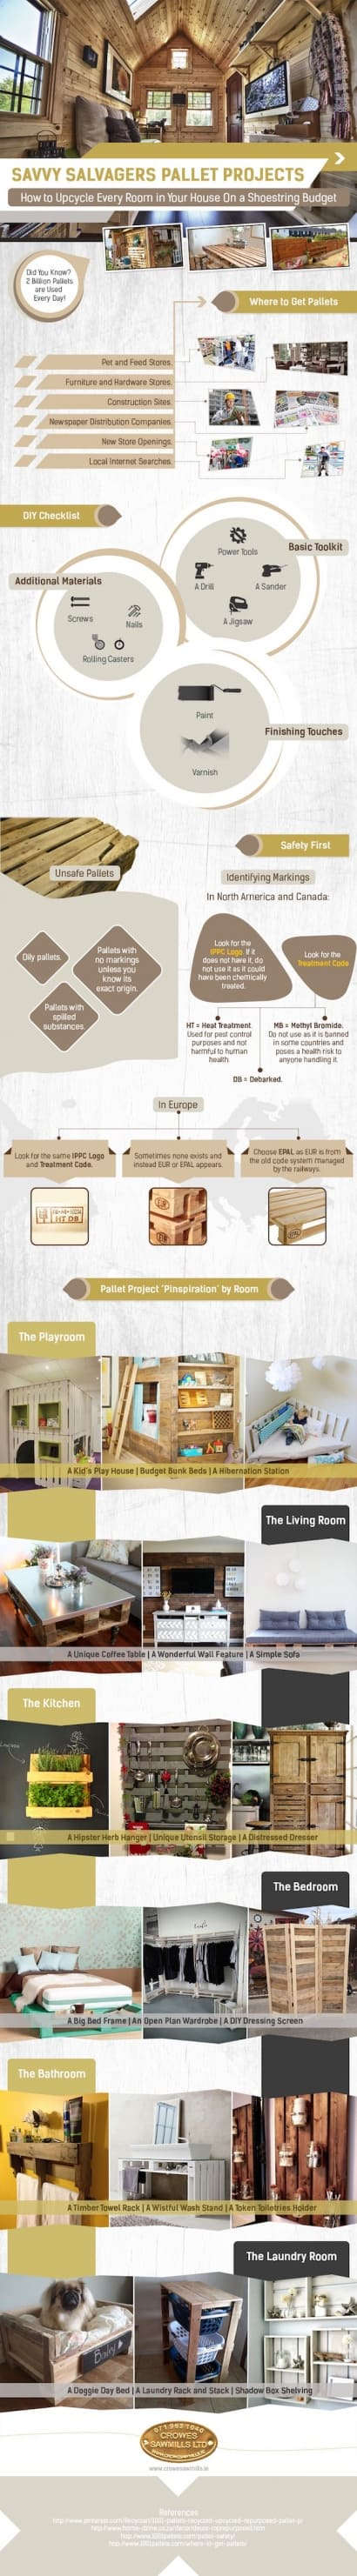 Pallet Projects: How to Upcycle Every Room in Your House on a Shoestring Budget, An infographic